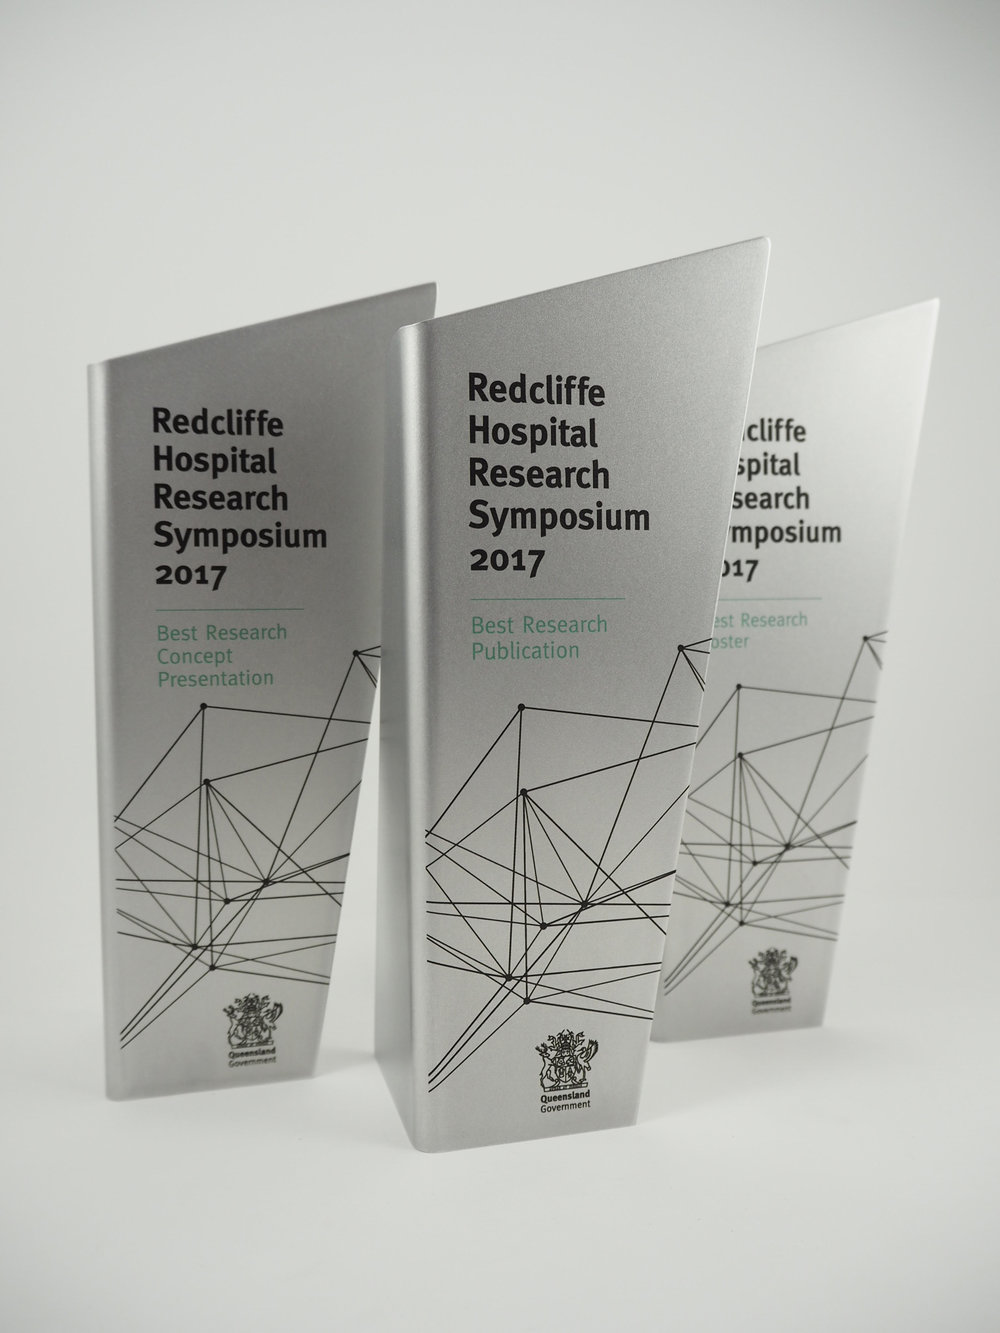 Redcliffe-Hospital-Symposium-eco-aluminium-trophy-award-01.jpg